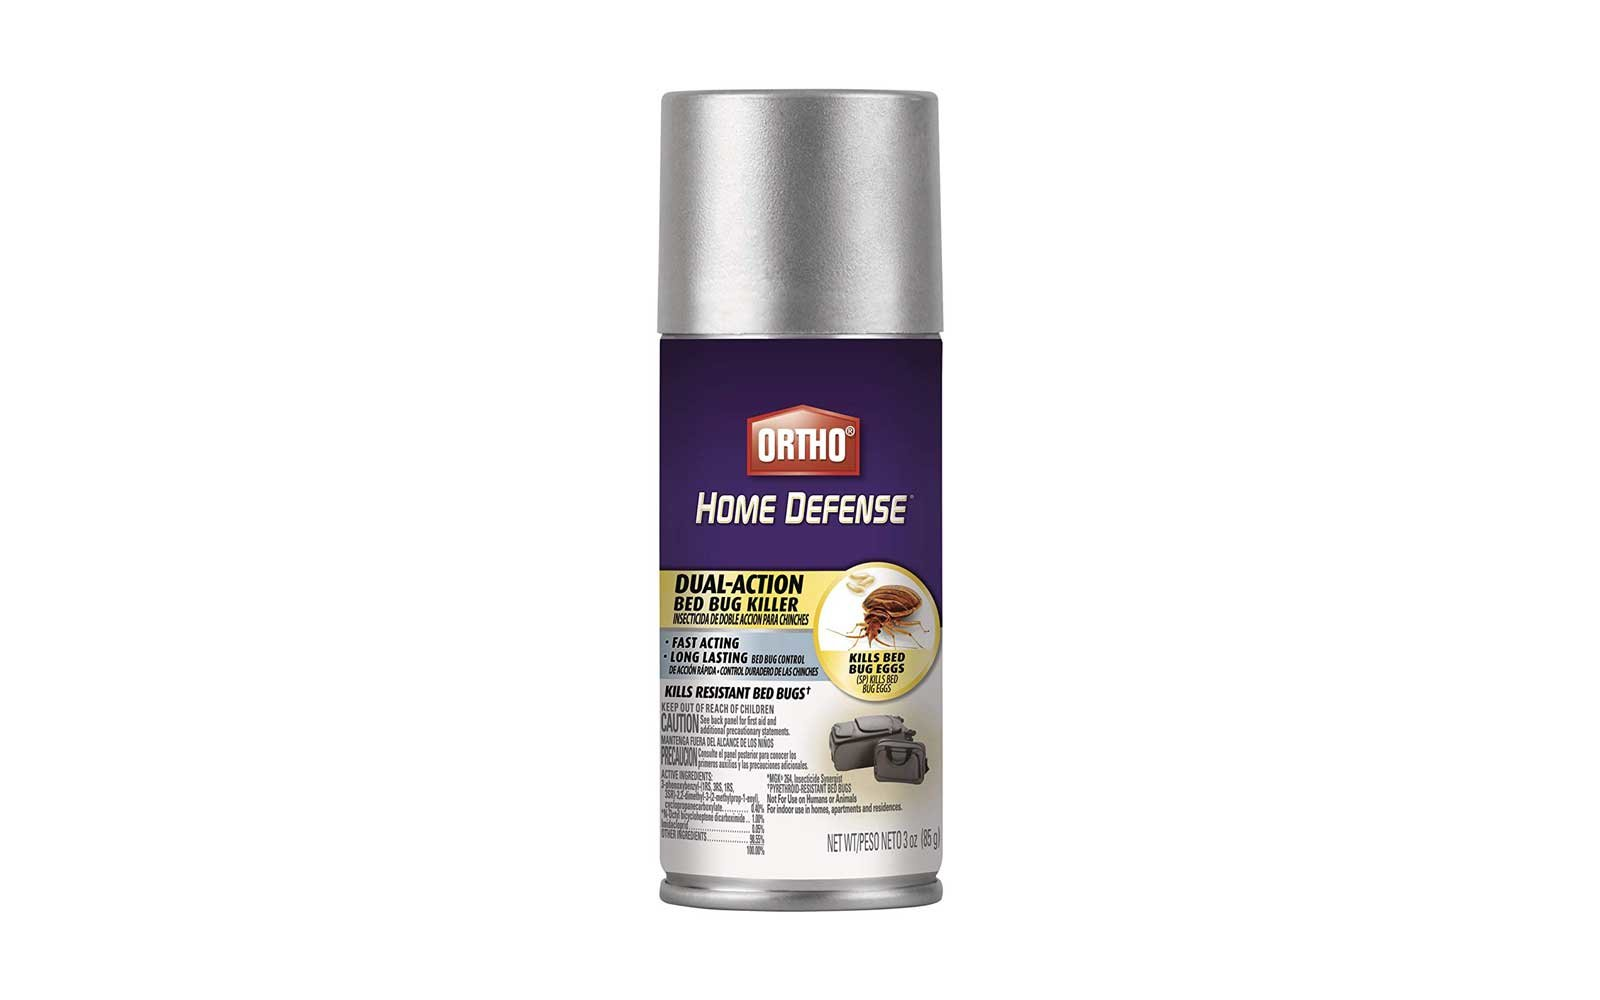 Sprays For Bed Bugs The Best Bed Bug Sprays For Travel In 2019 Travel Leisure